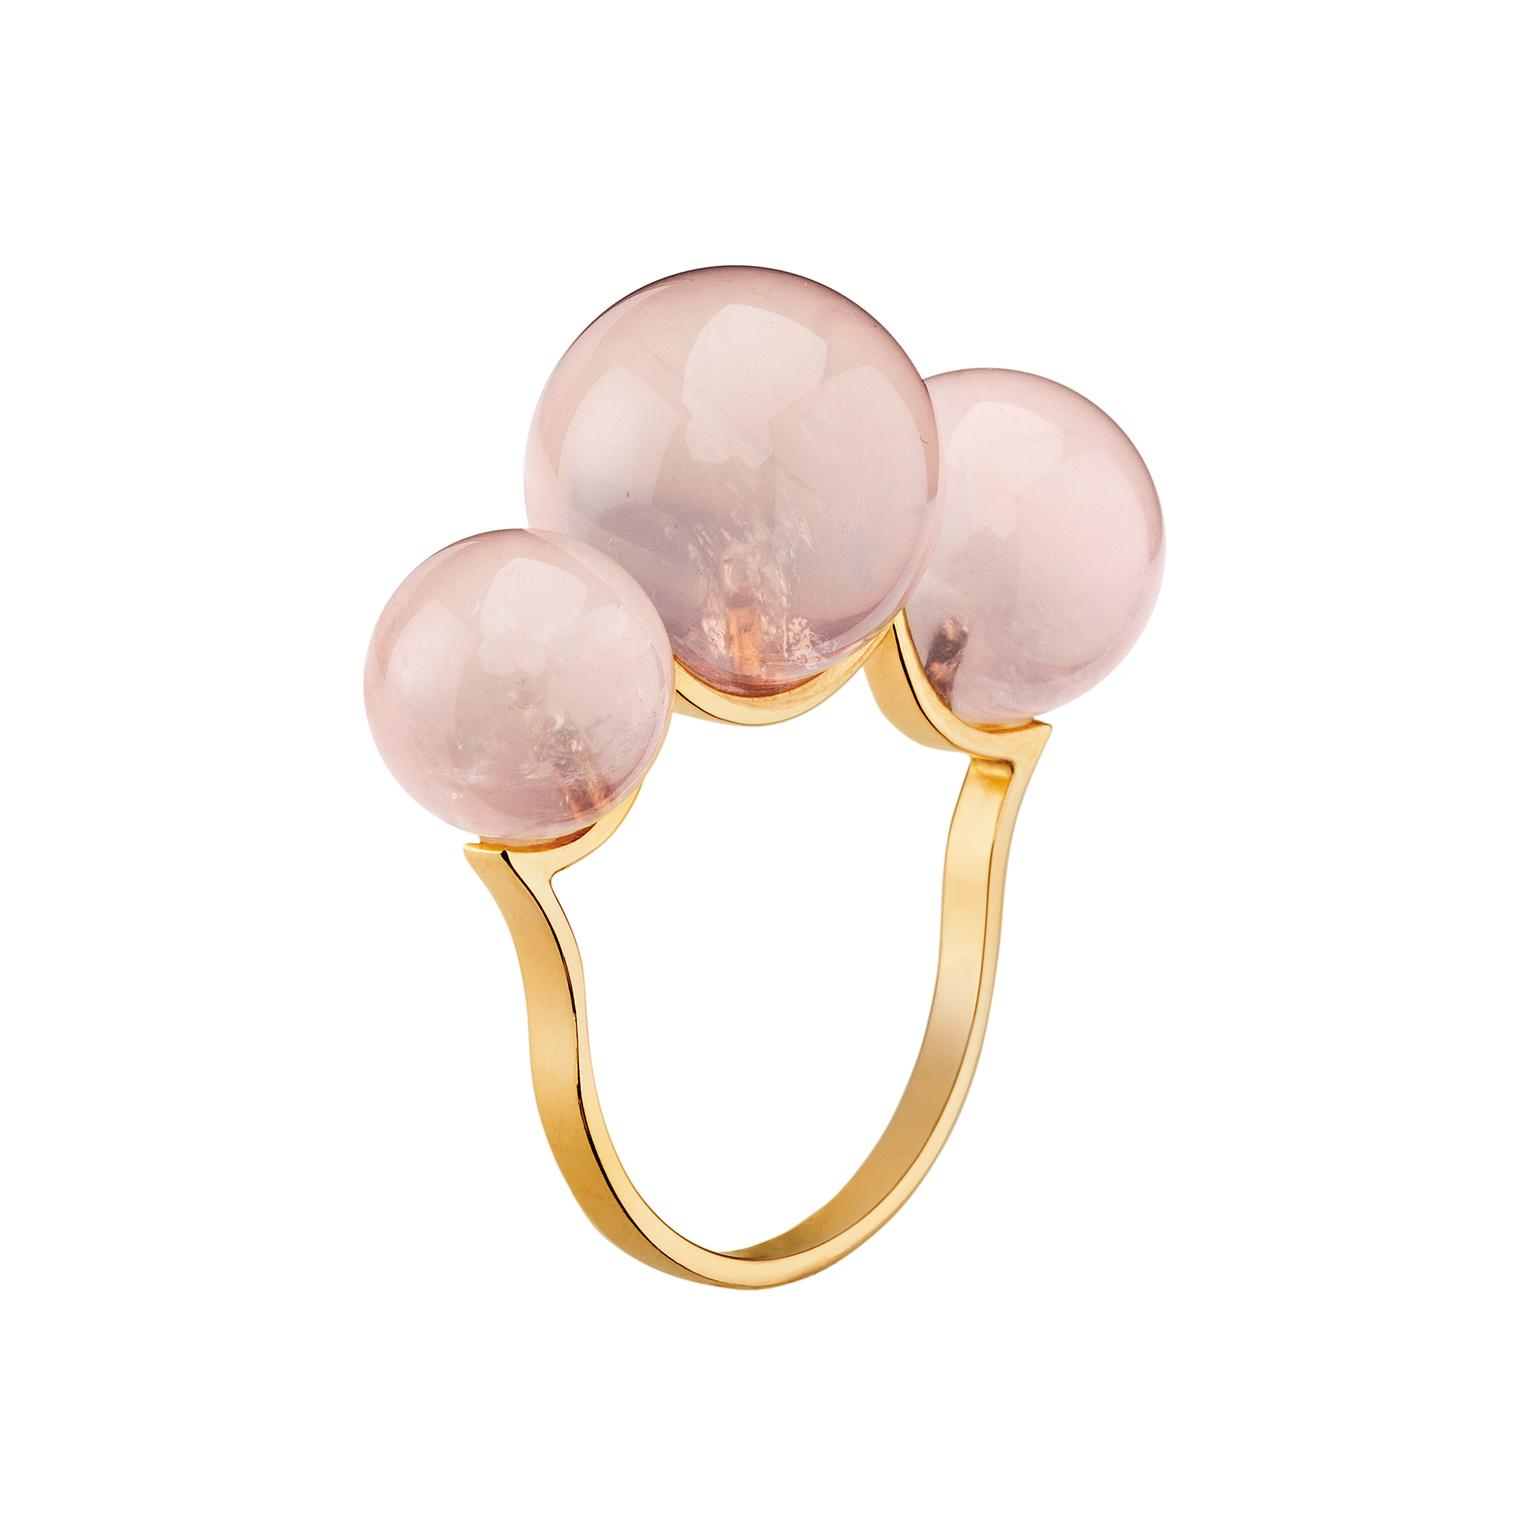 Mimata Empress rose quartz ring